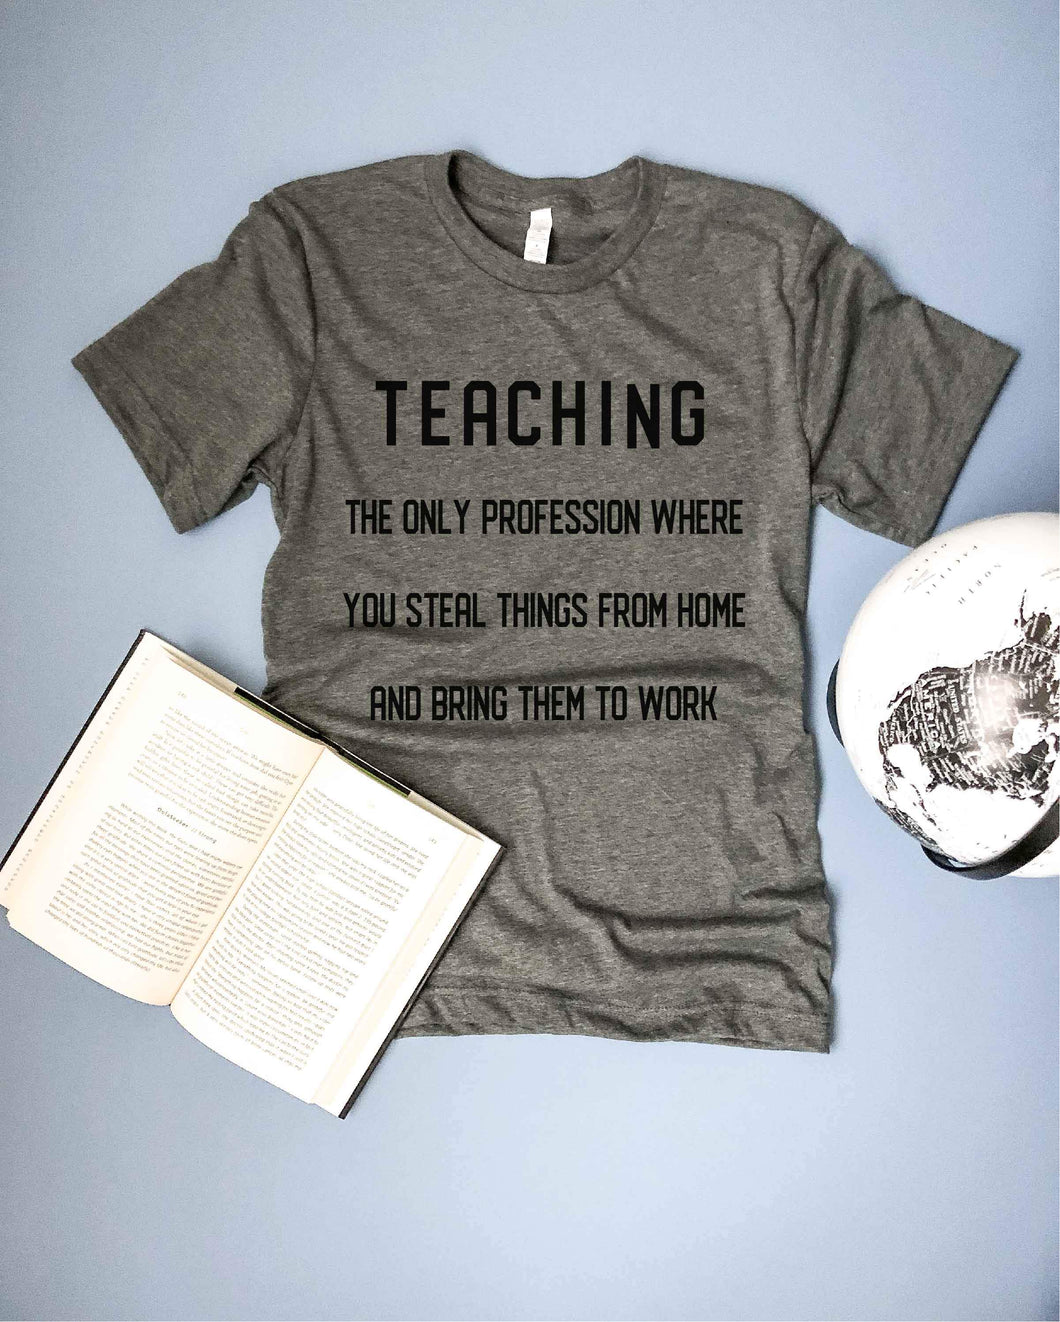 Teaching profession mens tee Short sleeve mens teacher tee Bella Canvas 3001 deep heather